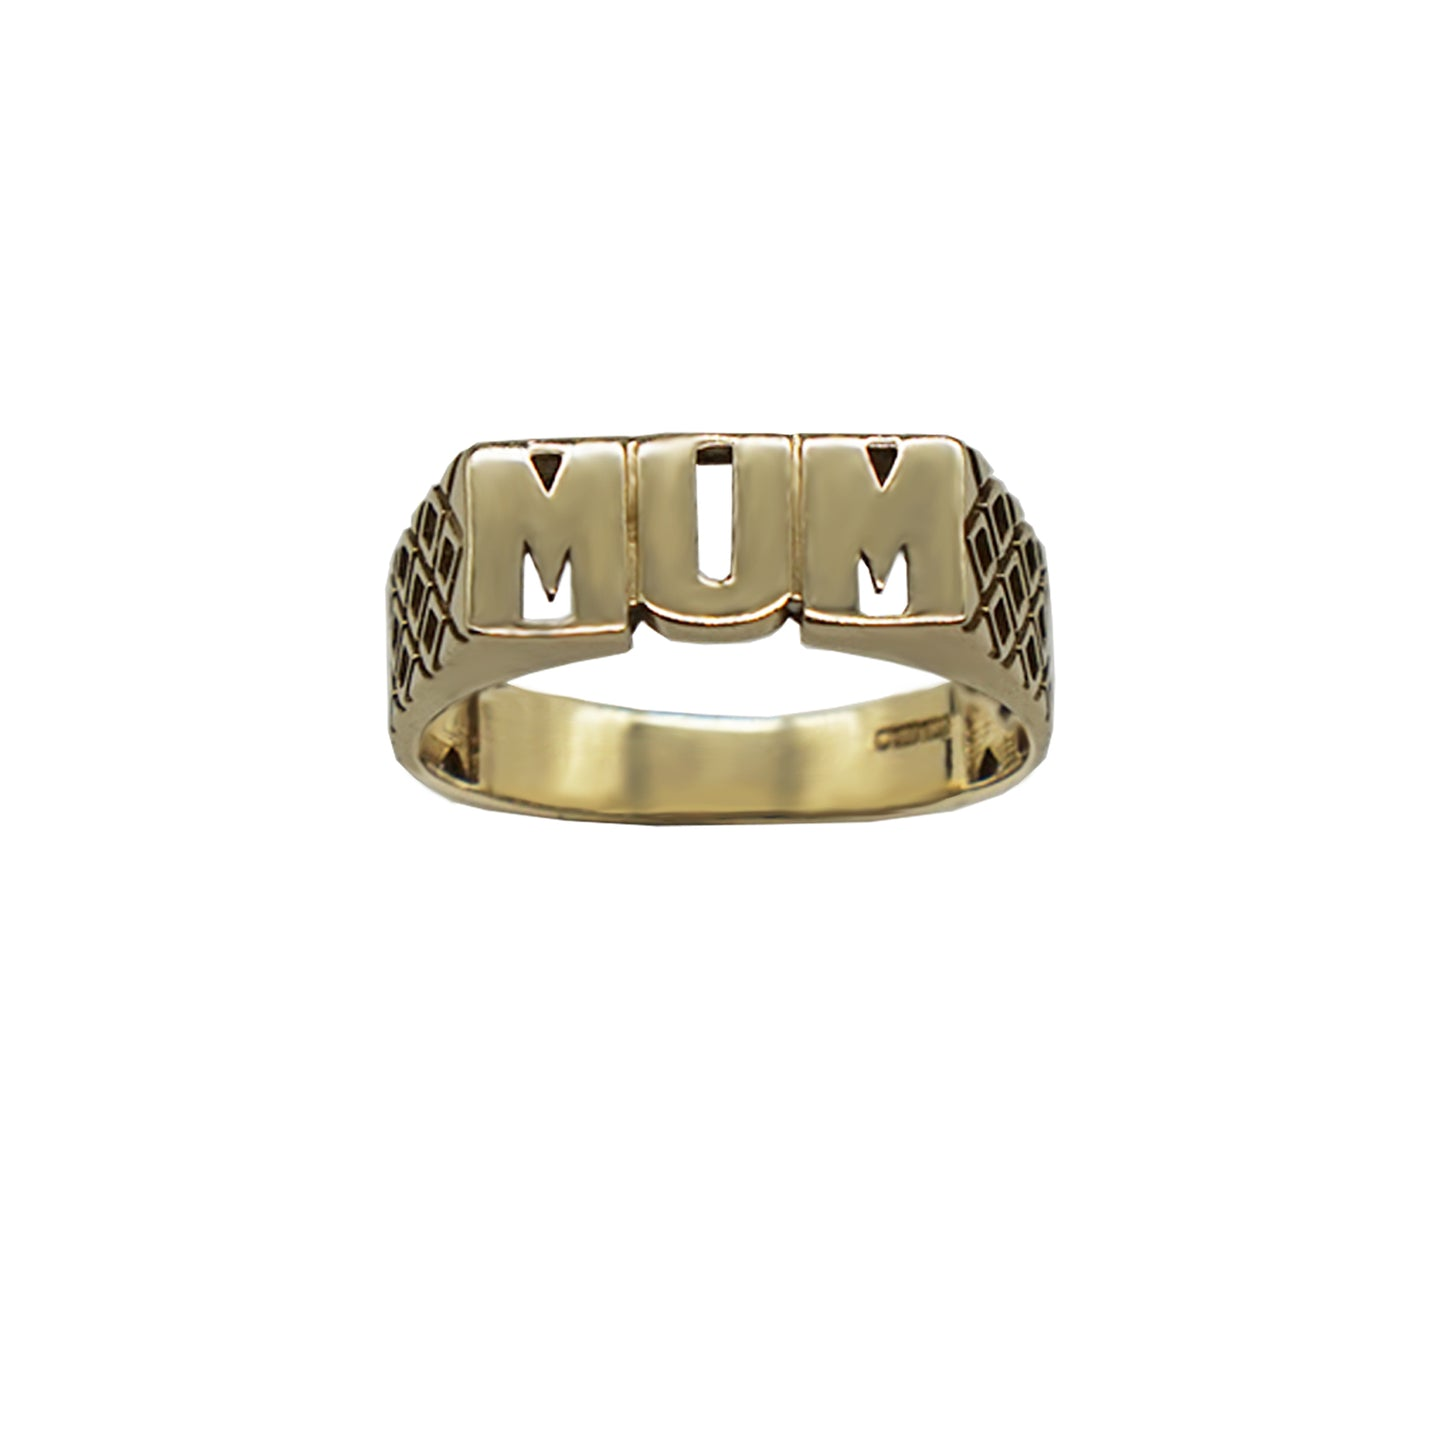 Vintage 9K Gold MUM ring in capitals, with Geo side details, hallmarks can be seen on inner band. Background white.